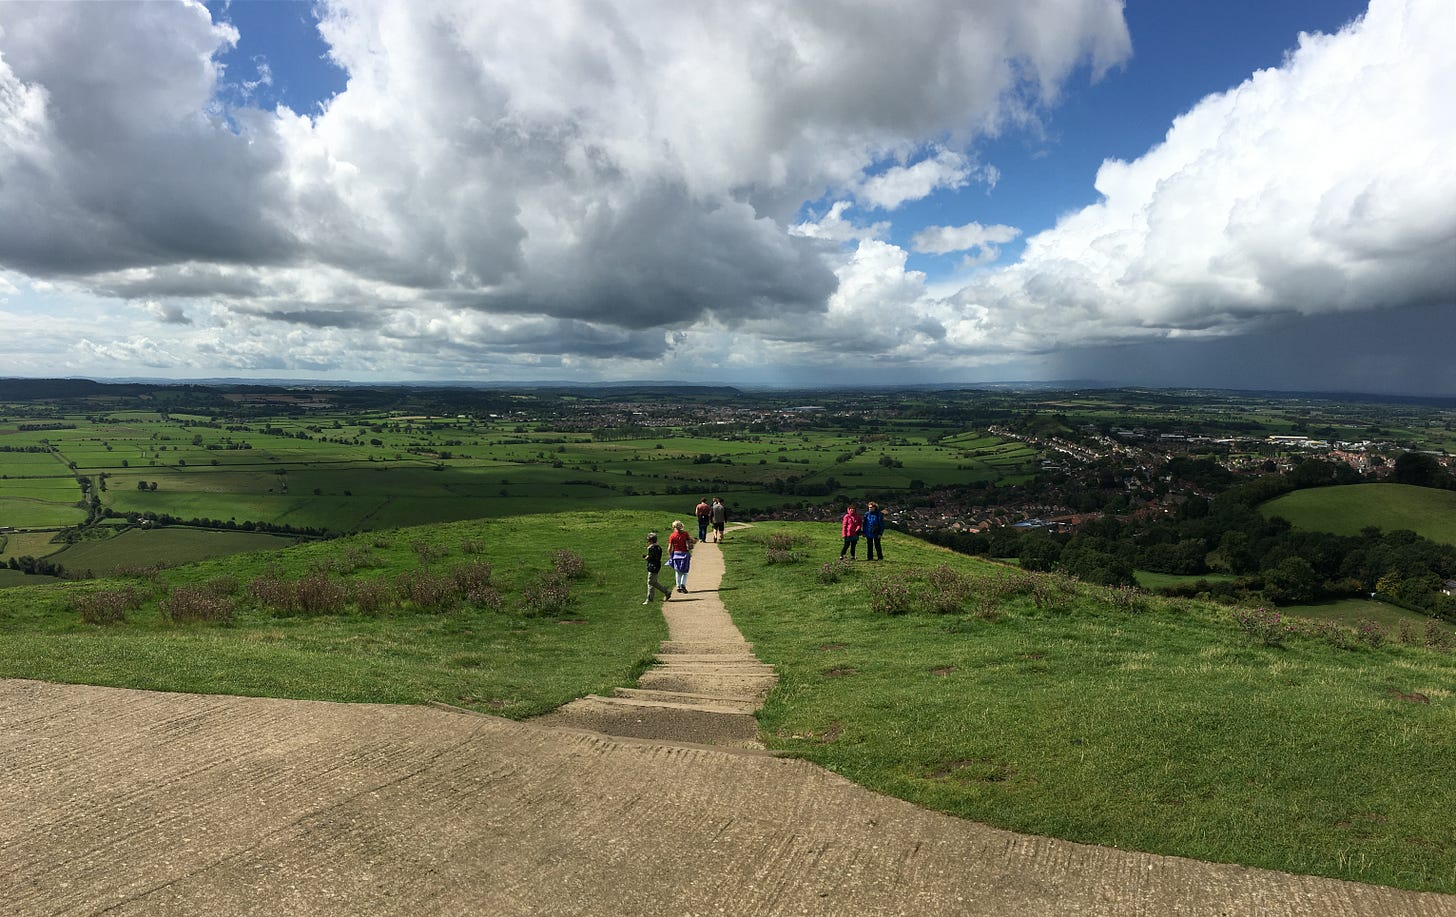 Partly cloudy sky over a vast expanse of green. A dirt path cuts down a hill in the center of the image, toward towns and houses below. A few people are ahead on the path.